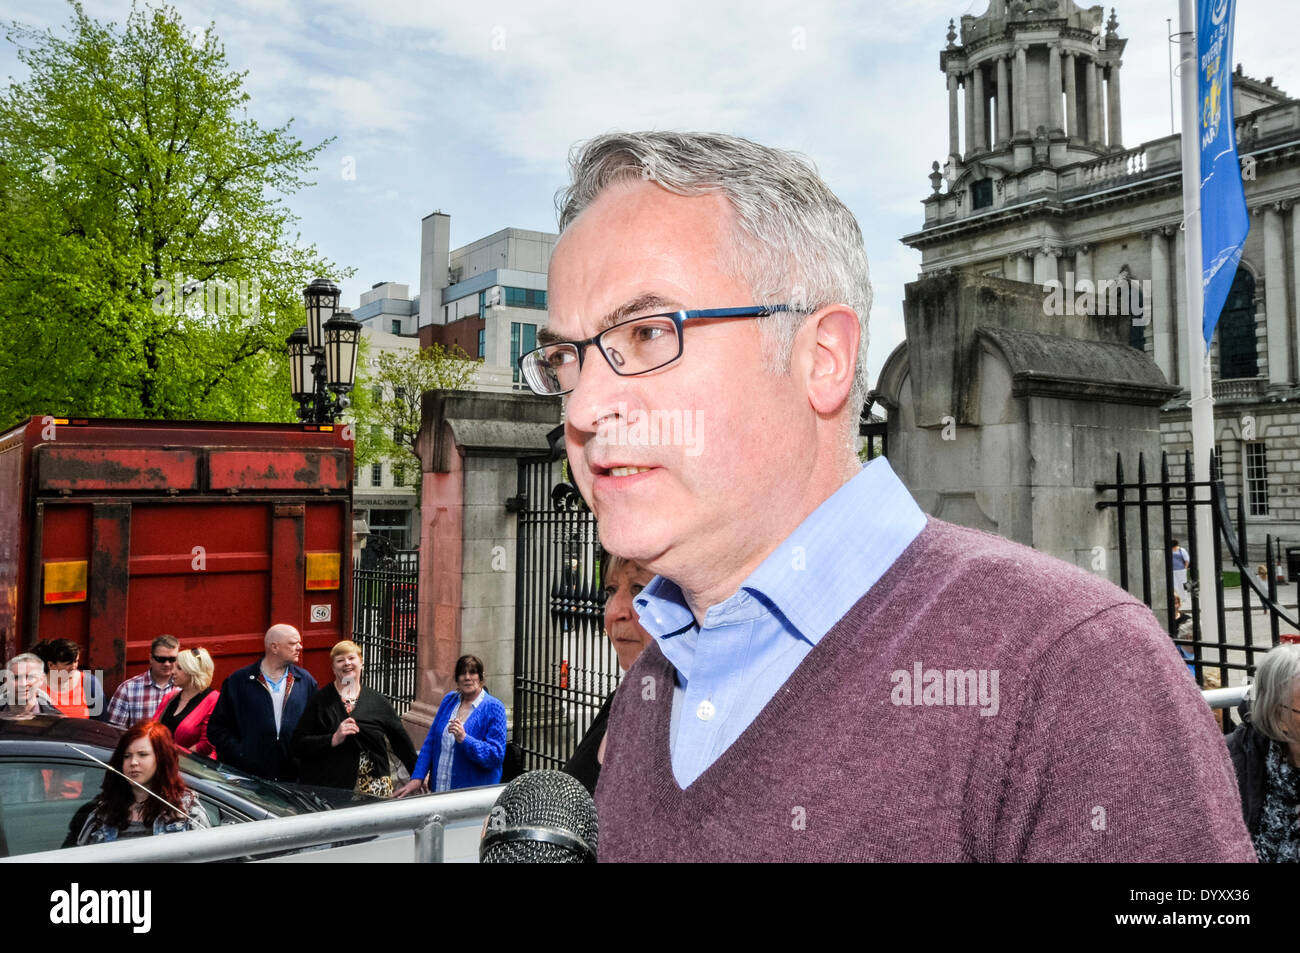 Belfast, Northern Ireland. 27 Apr 2014 - Alex Attwood MLA addresses a crowd at Belfast City Hall Credit:  Stephen Barnes/Alamy Live News - Stock Image